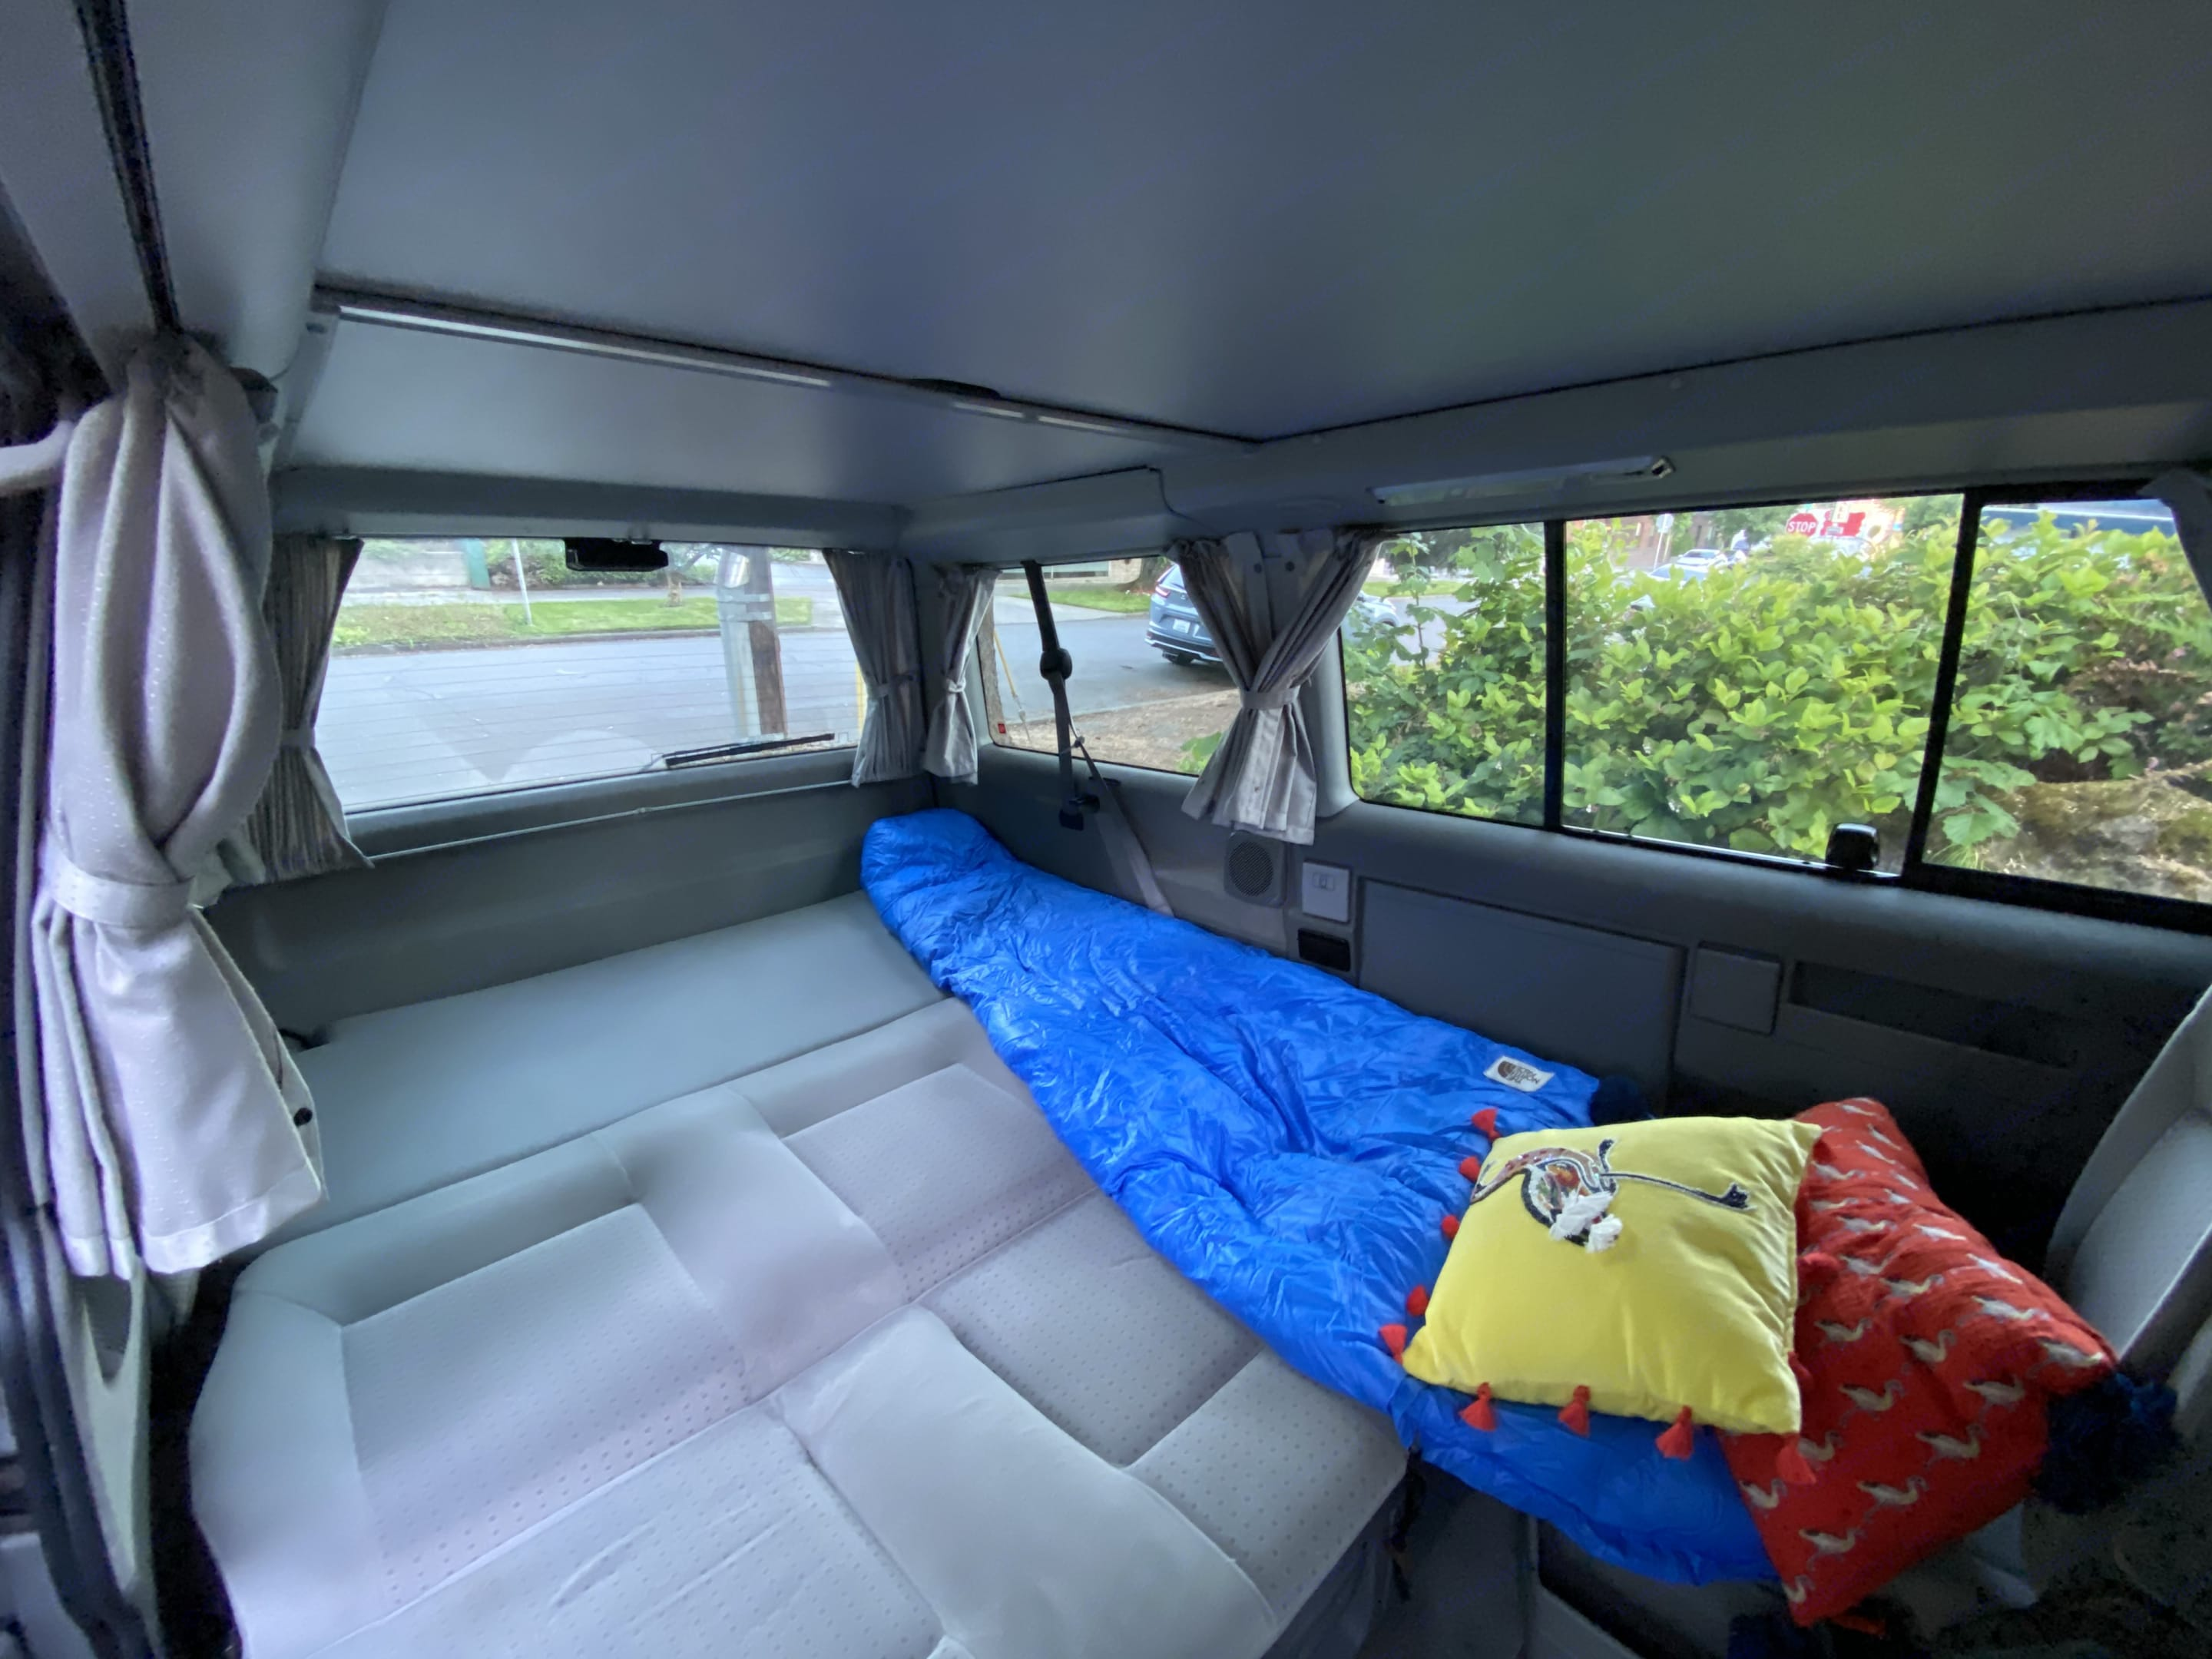 The backseat folds down and makes into a full-size bed that sleeps two. . Volkswagen Westfalia Eurovan Weekender 2002